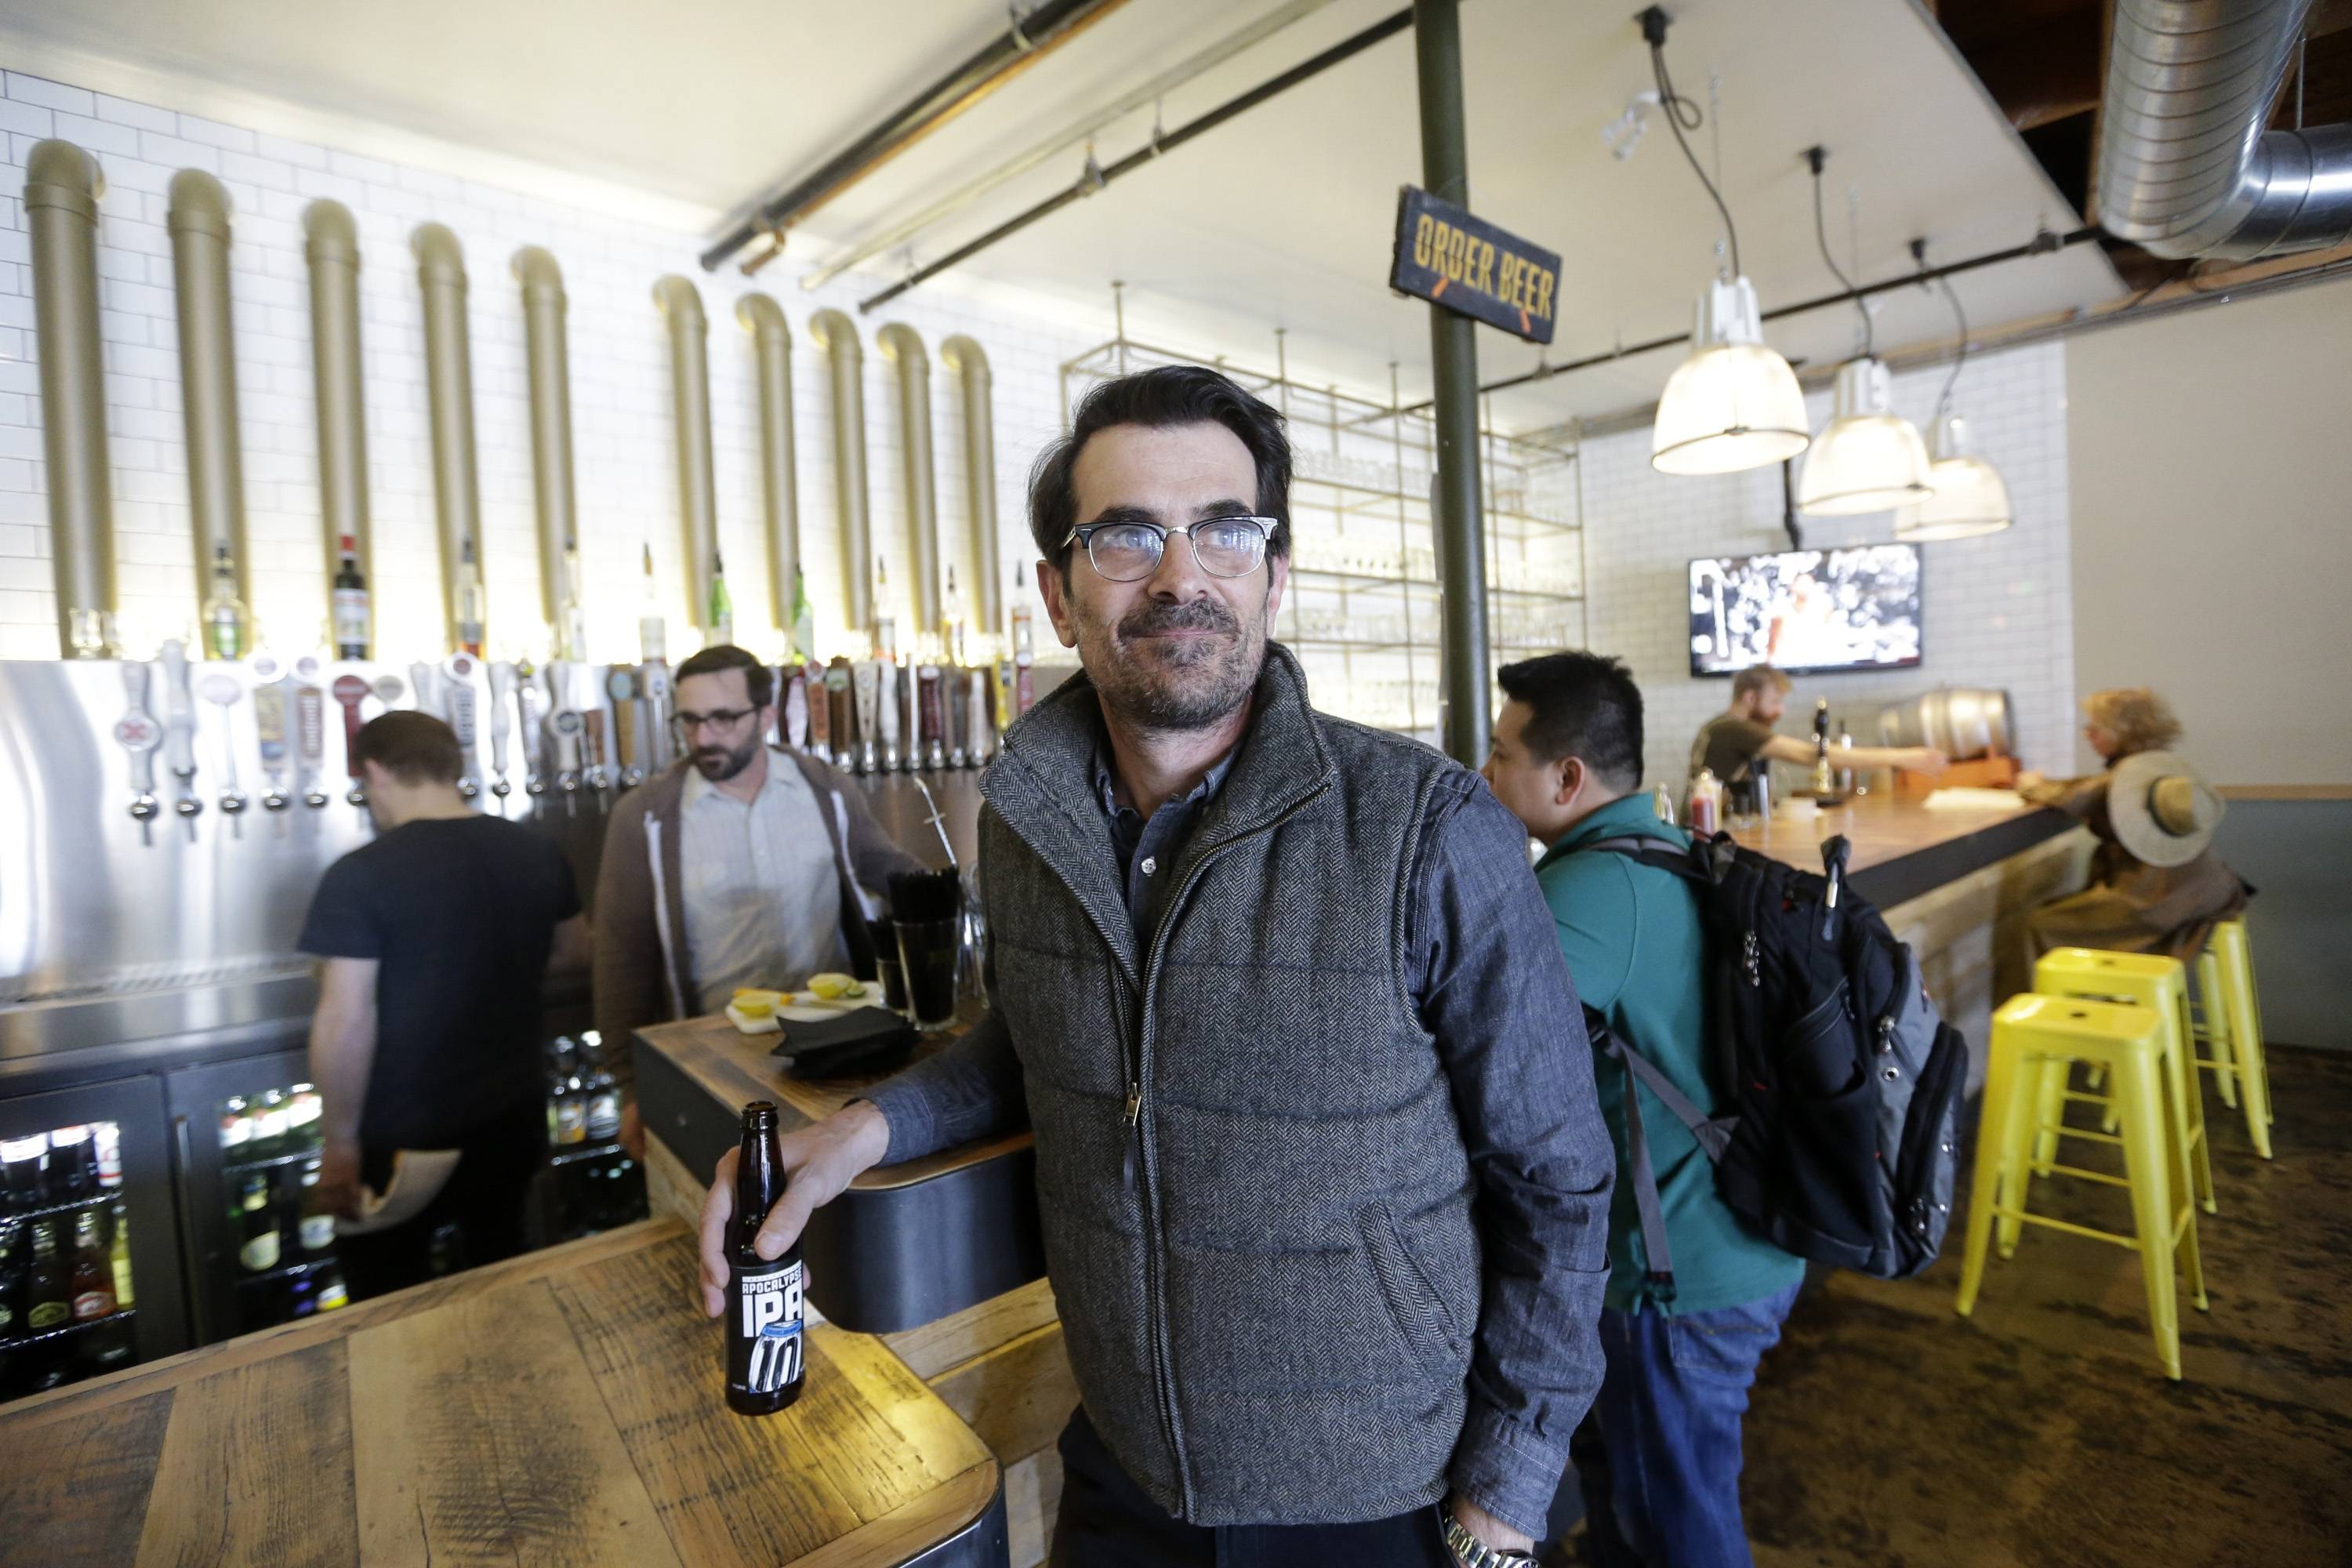 Actor Ty Burrell just opened Beer Bar, a beer garden-like eatery next door to Bar X, which he co-owns, that serves 150 beers paired up with an array of house-made bratwursts, local breads and Belgian fries.